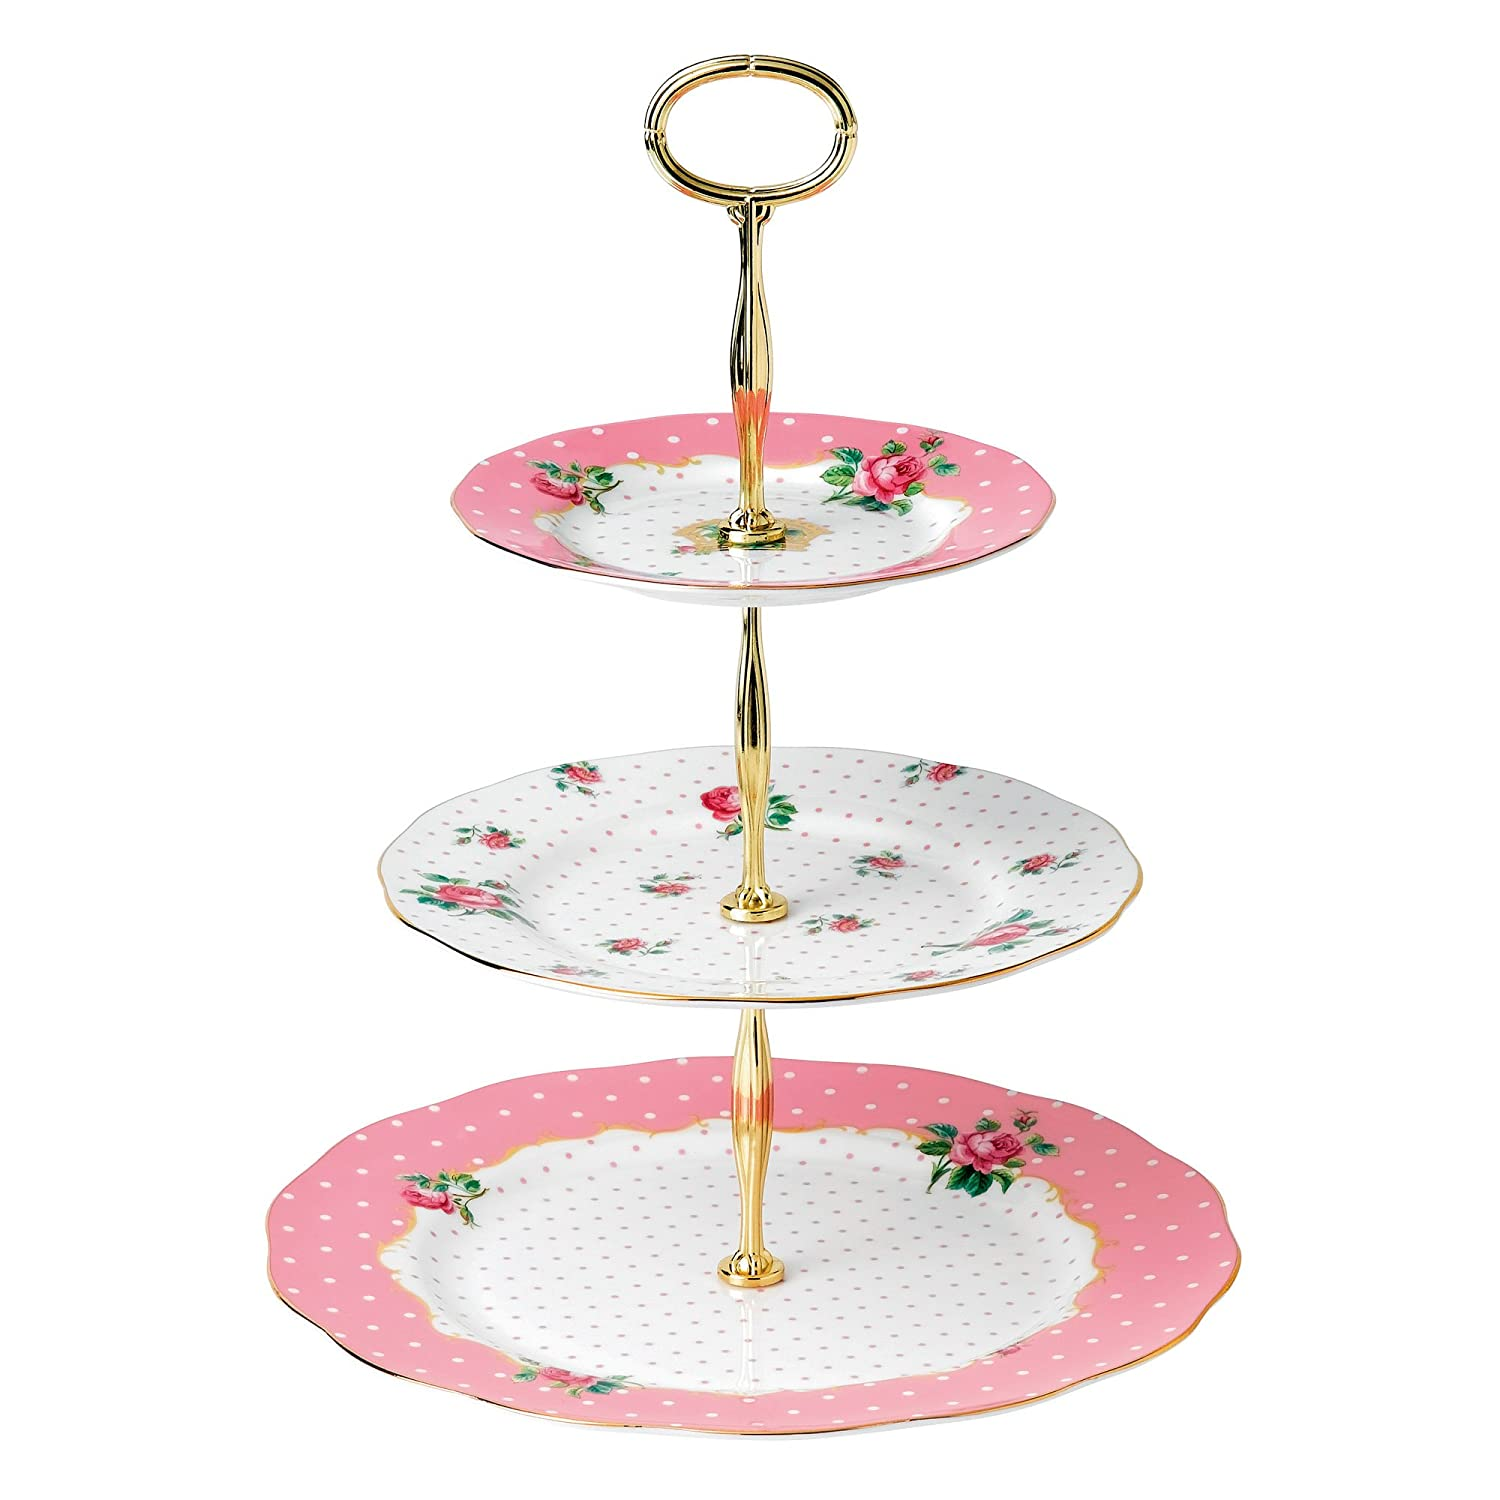 Royal Albert New Country Roses Vintage 3-Tier Cake Stand, Cheeky Pink